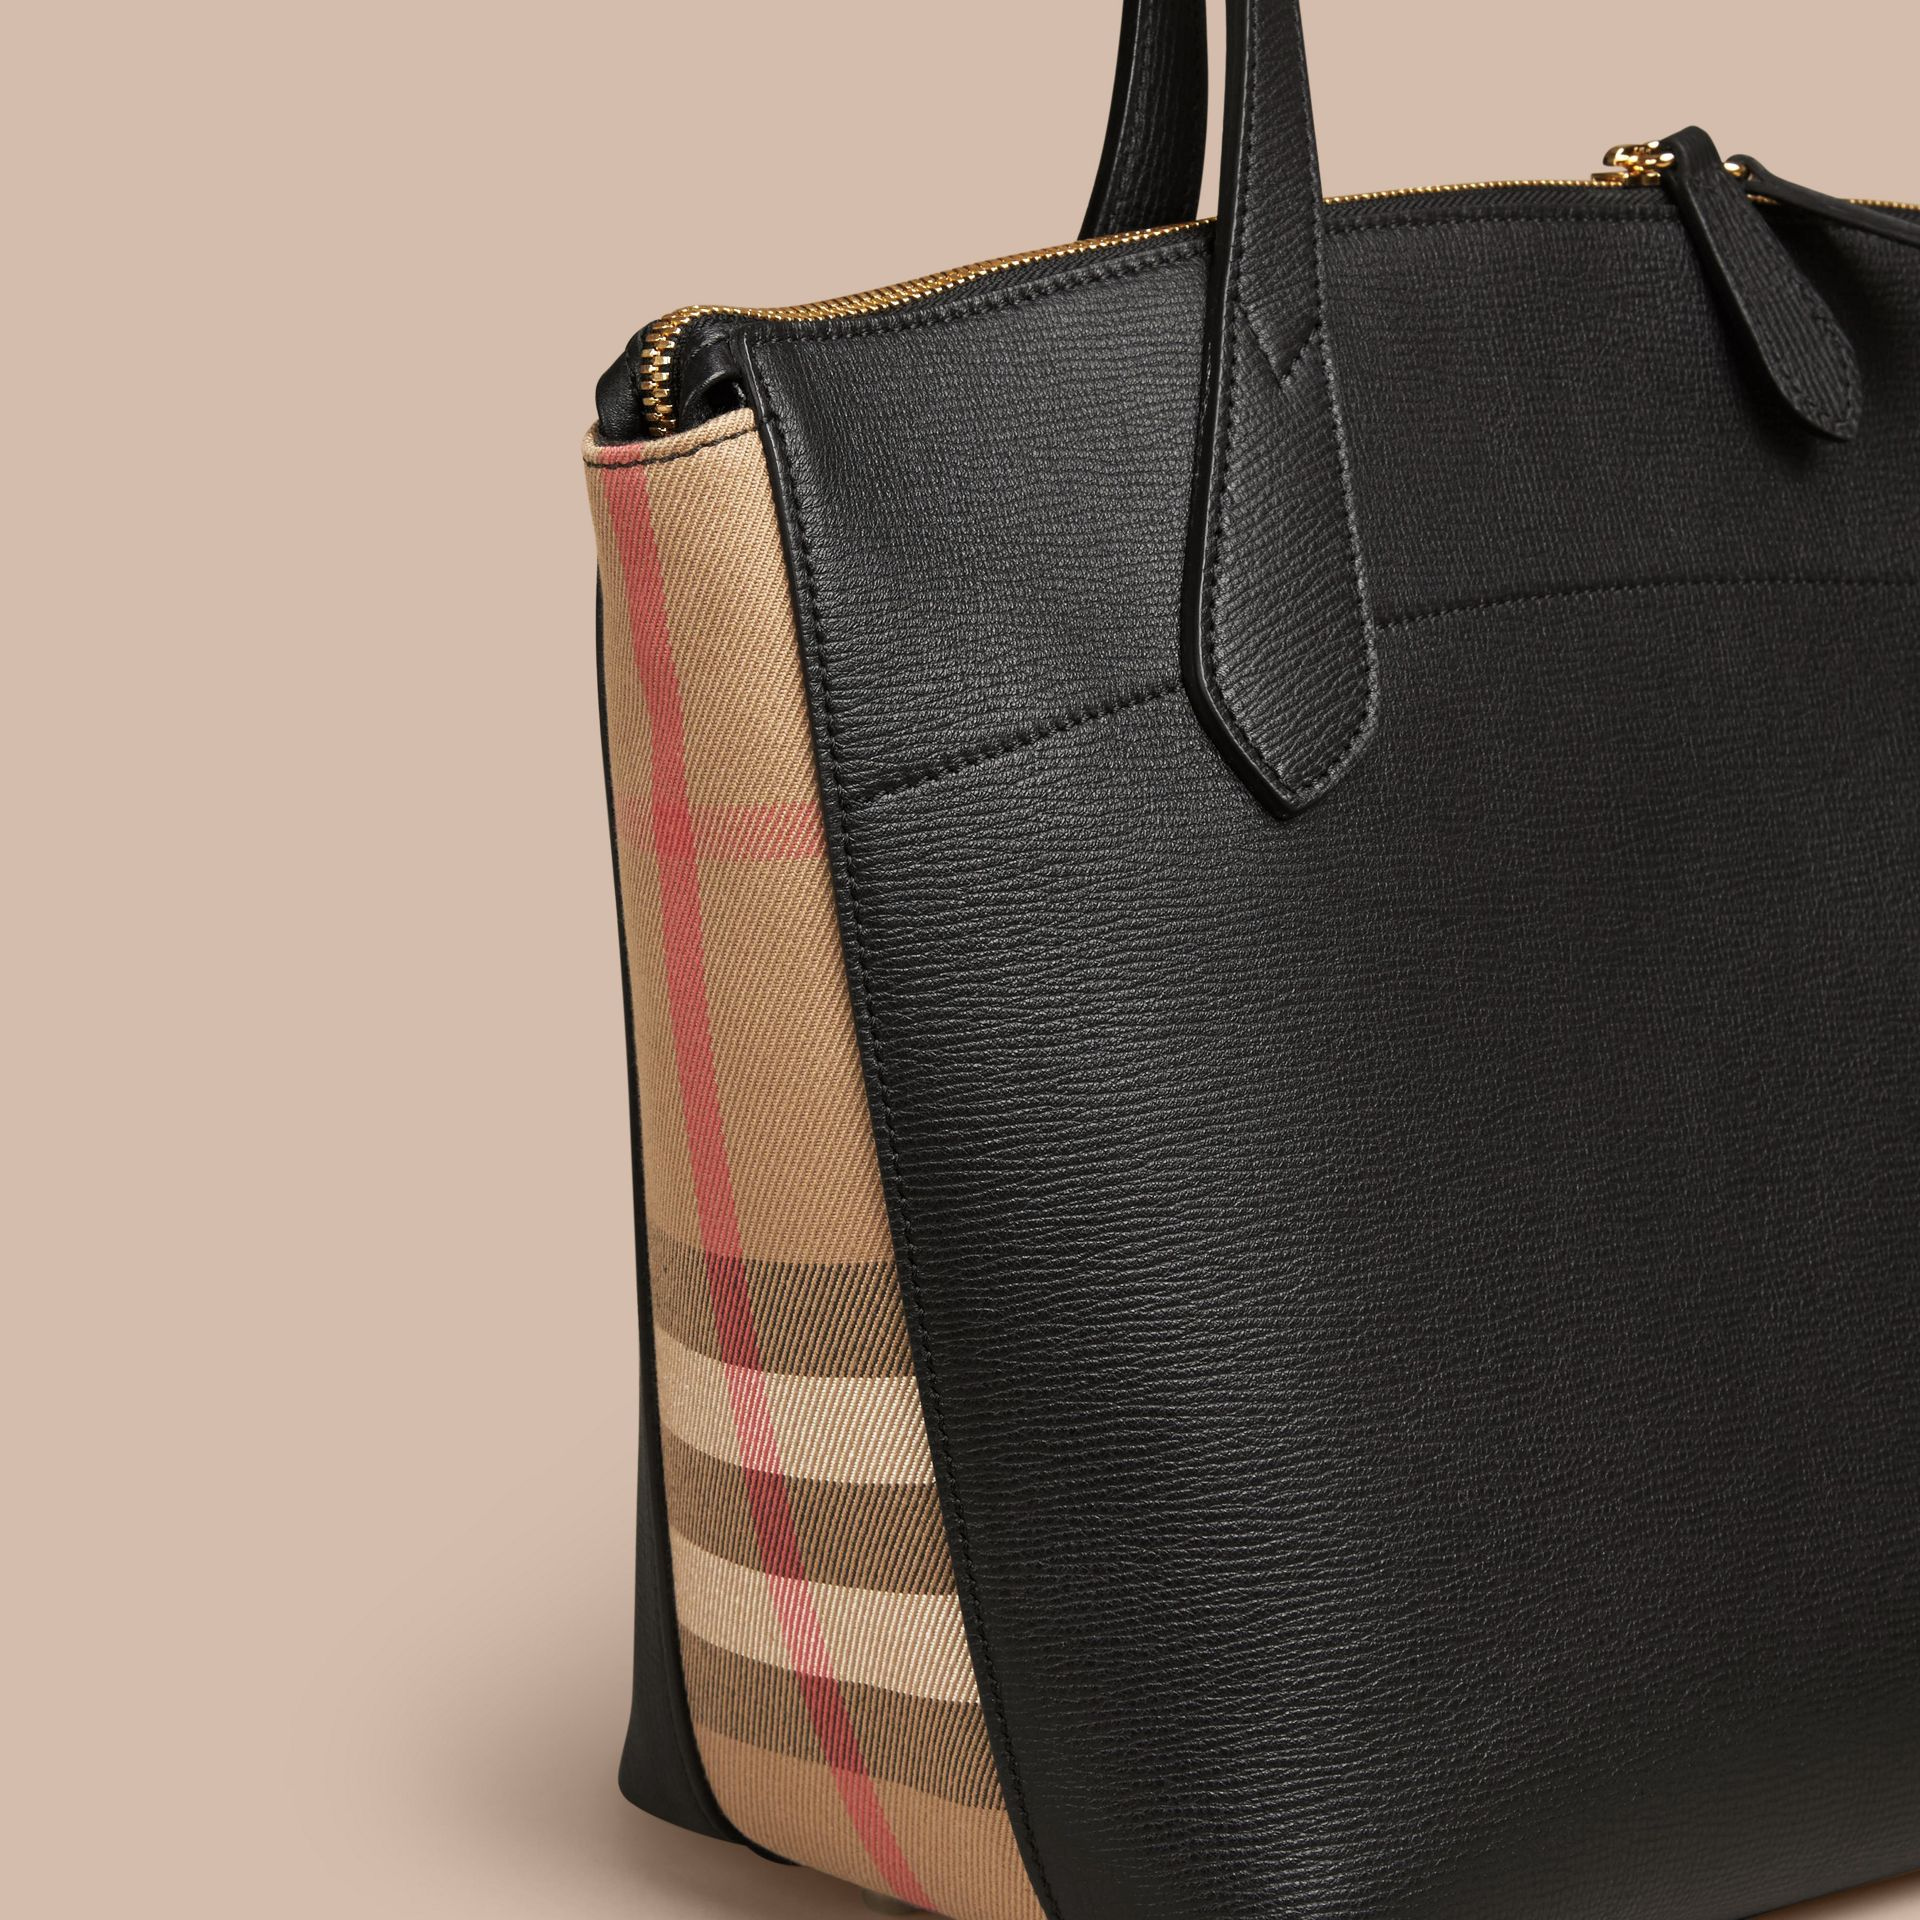 Medium Leather and House Check Tote Bag in Black - Women | Burberry - gallery image 5